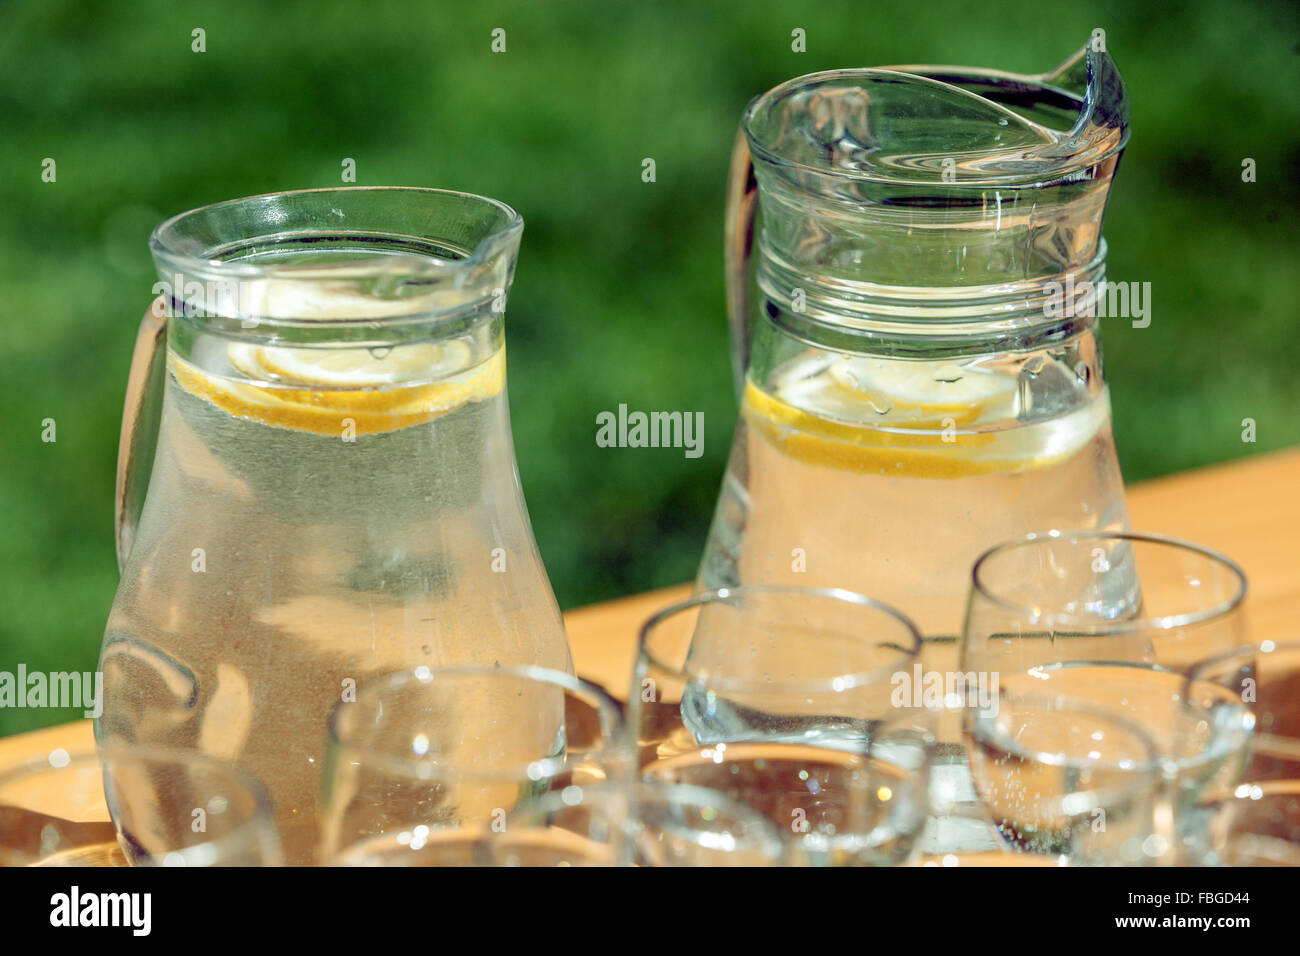 The two carafes of fresh lemon flavored water and glasses on a table in the garden - Stock Image